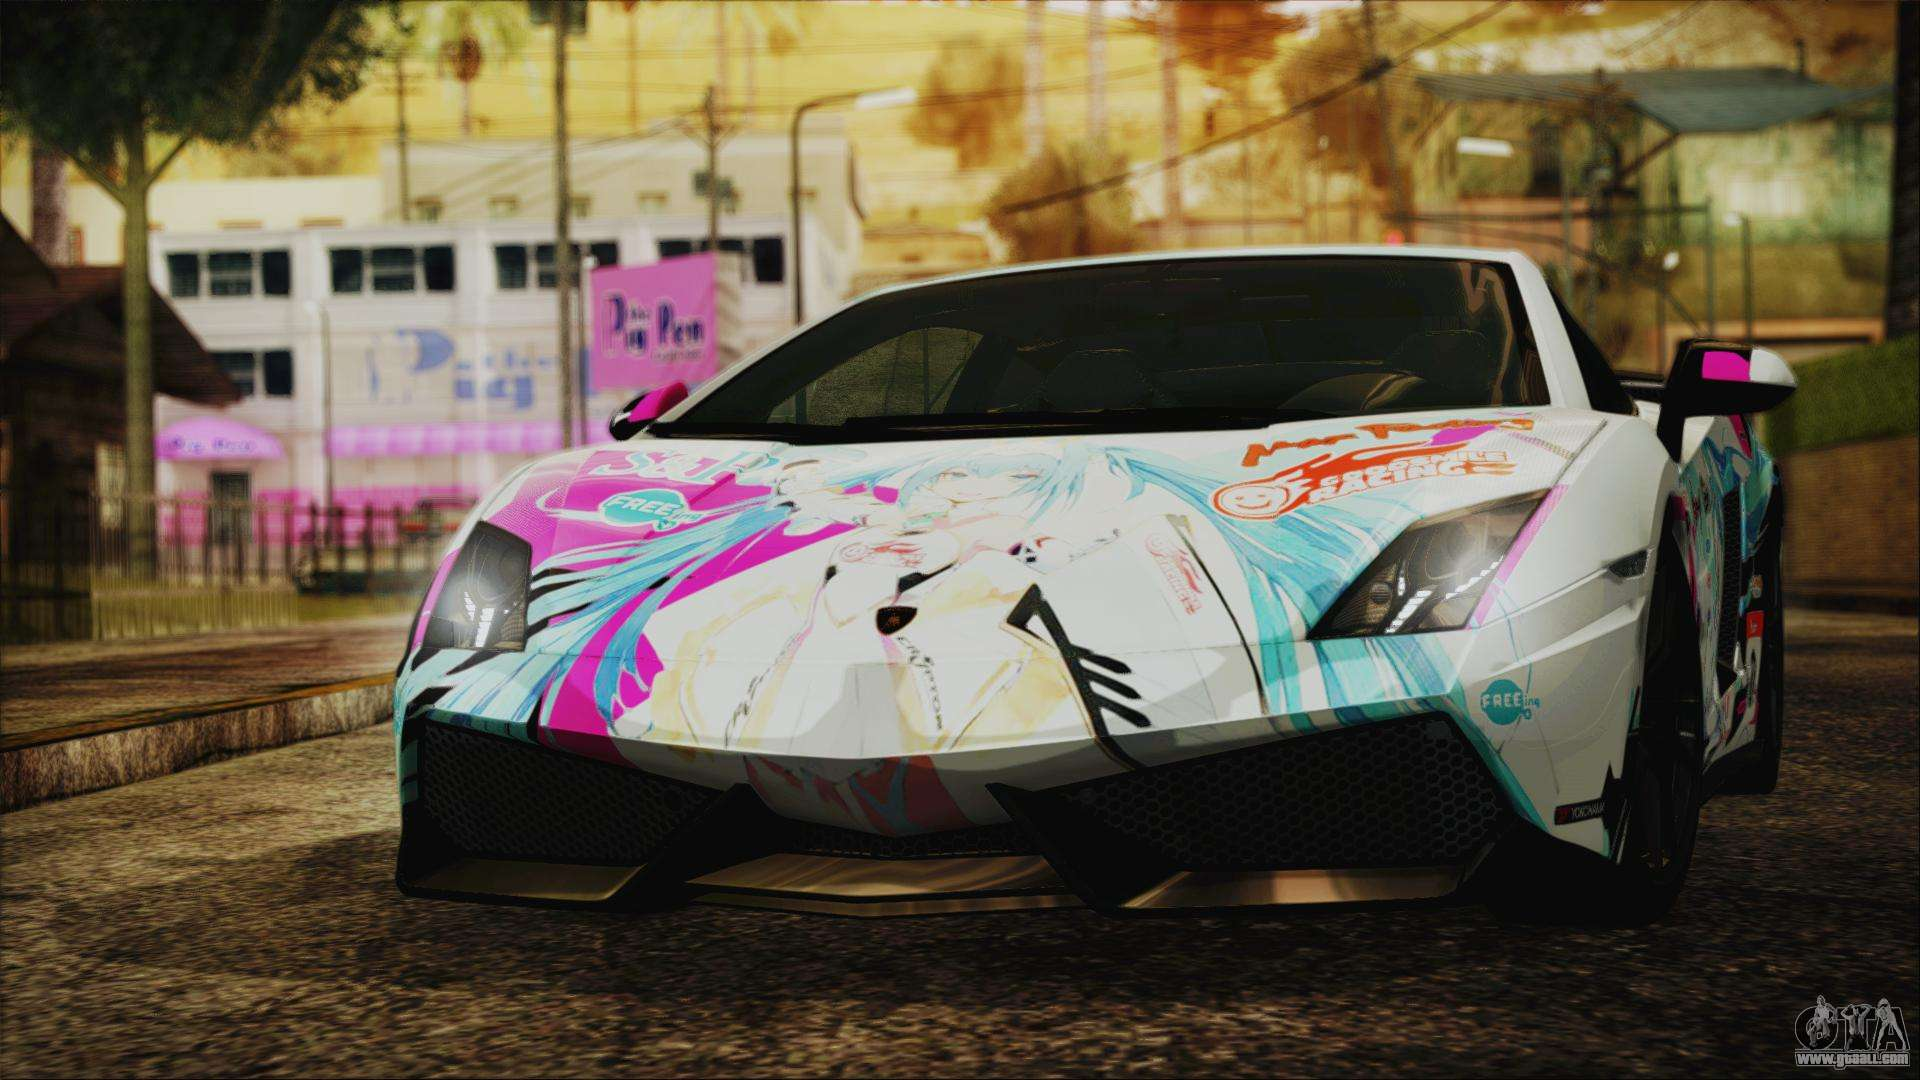 Gta 5 Cars Wallpaper Download Lamborghini Gallardo Lp570 4 2015 Miku Racing 4k For Gta